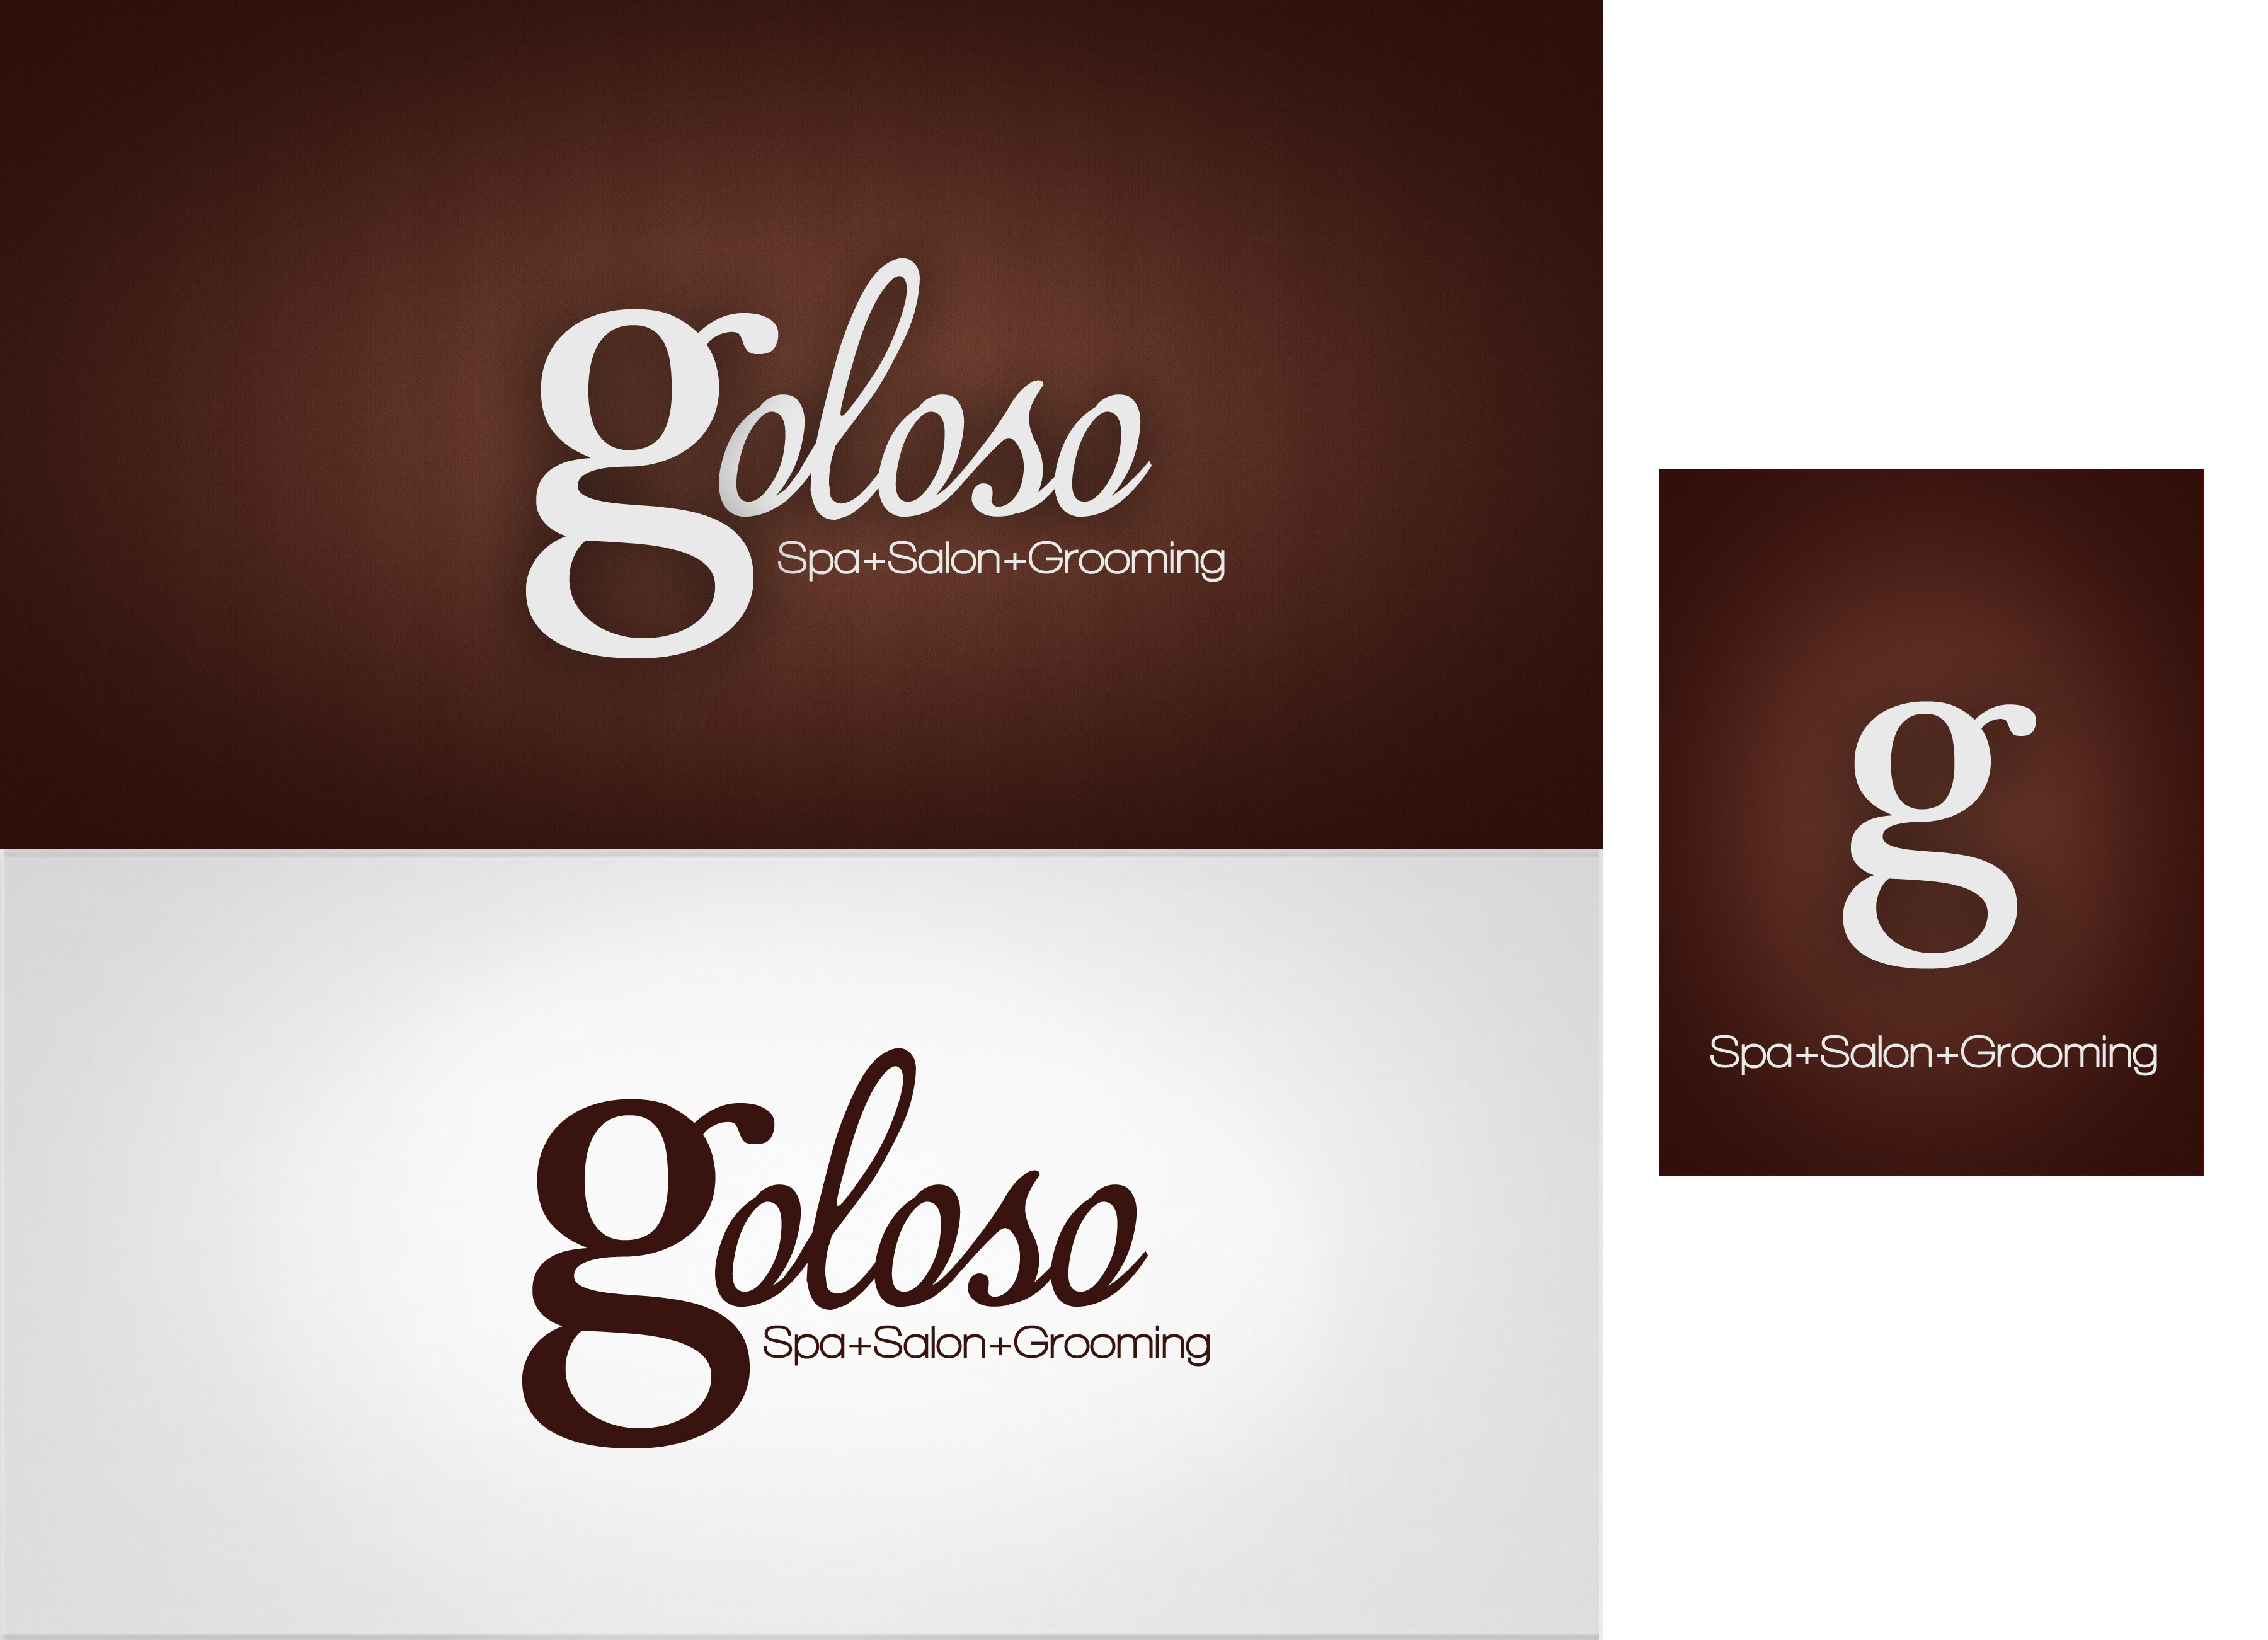 Logo Design by Lama Creative - Entry No. 102 in the Logo Design Contest Unique Logo Design Wanted for Goloso.